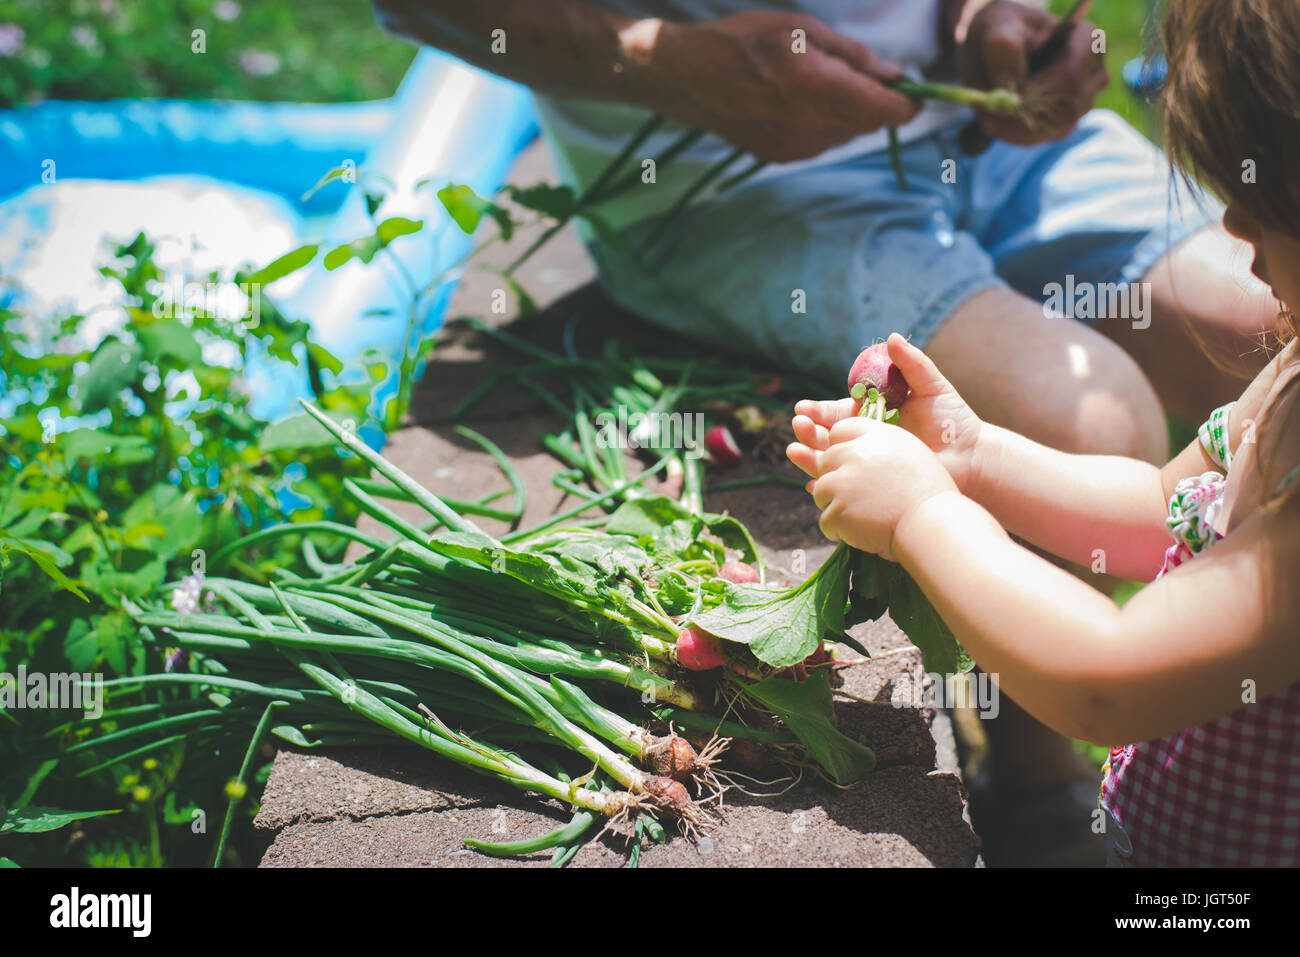 A grandfather cuts up vegetables fresh from the garden with his  granddaughter. - Stock Image